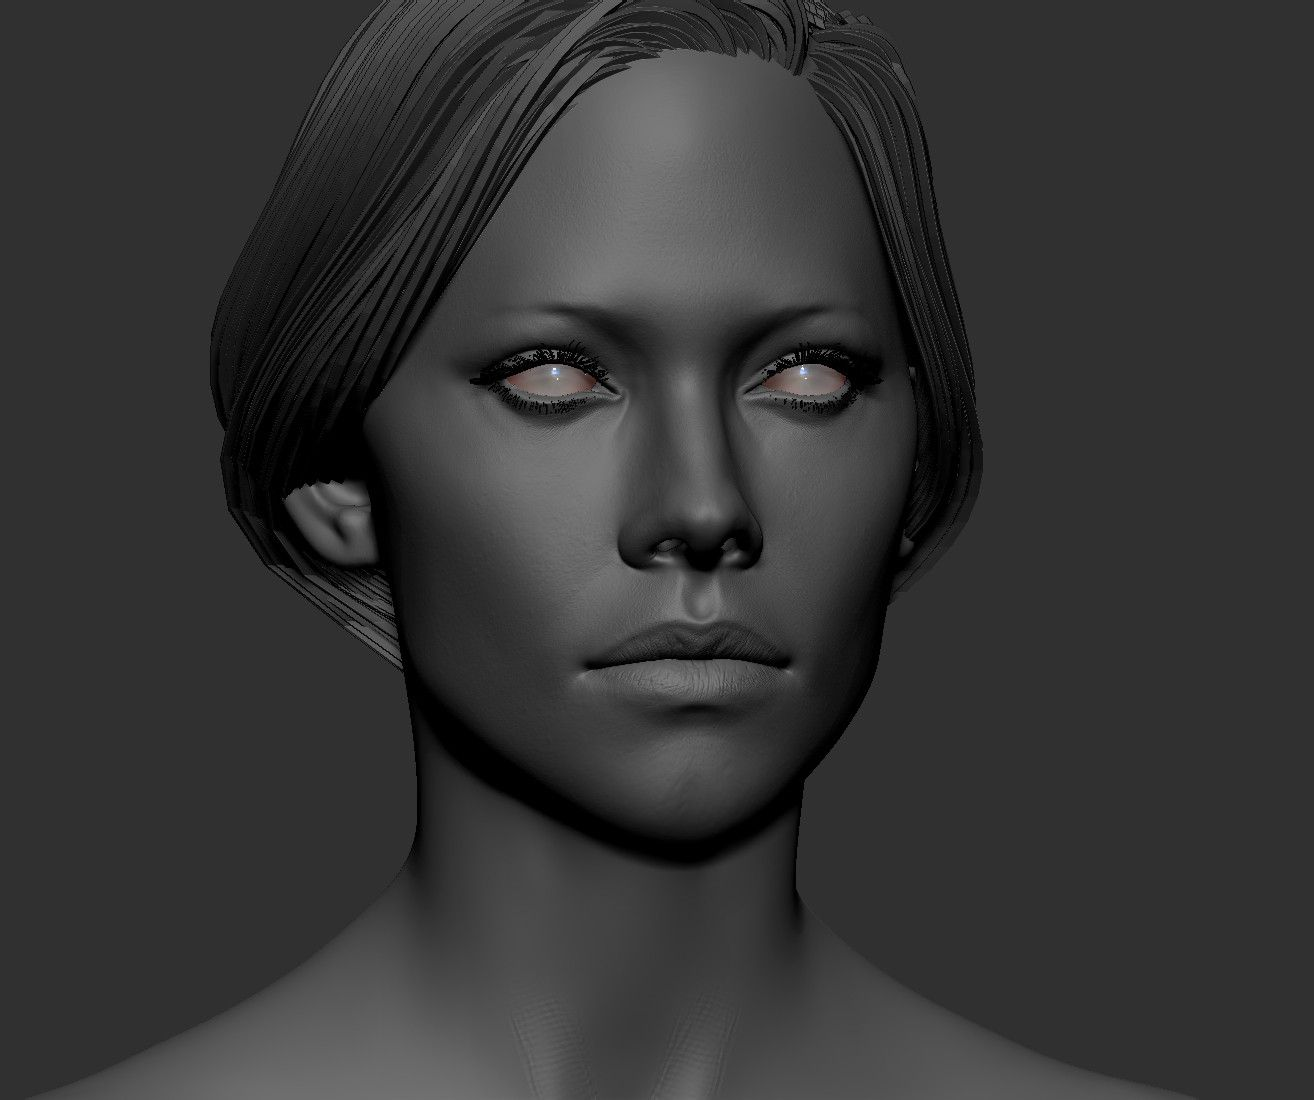 ArtStation - anatomy part 1, yuri alexander | Portrait Sculpt ...